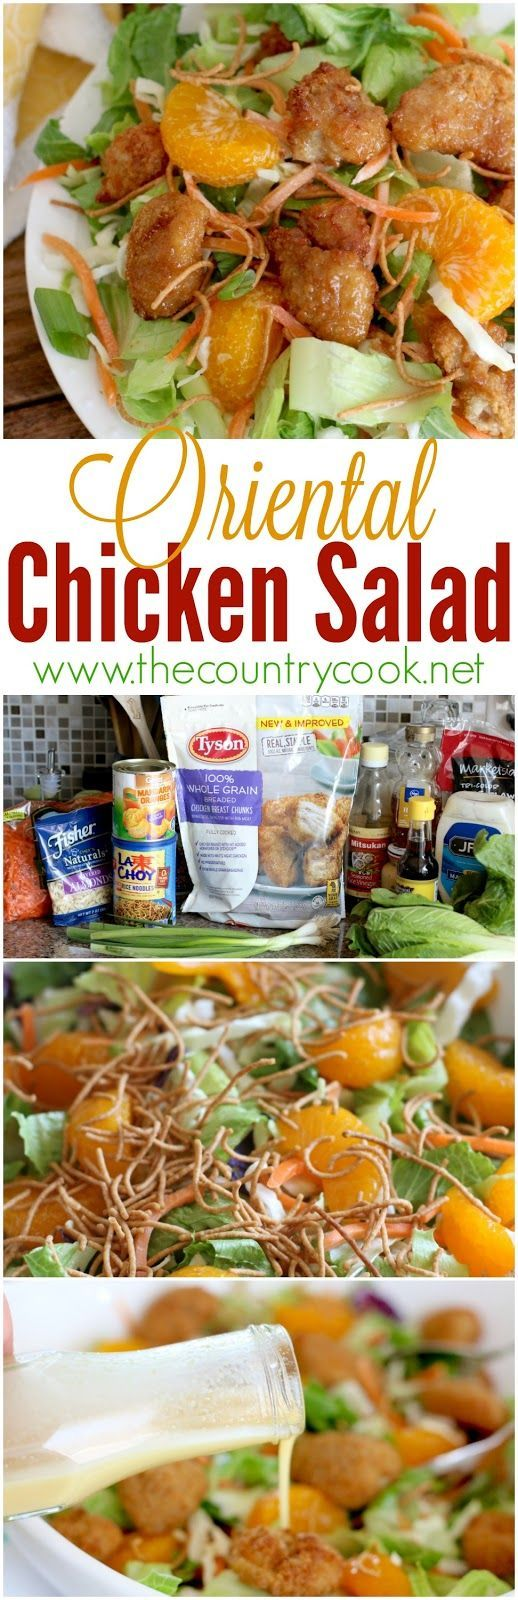 Copycat Applebee's Oriental Chicken Salad recipe from The Country Cook. It's made so easy with Tyson chicken! The dressing is AMAZING. I could eat it on everything! I am in love with making this at home now!